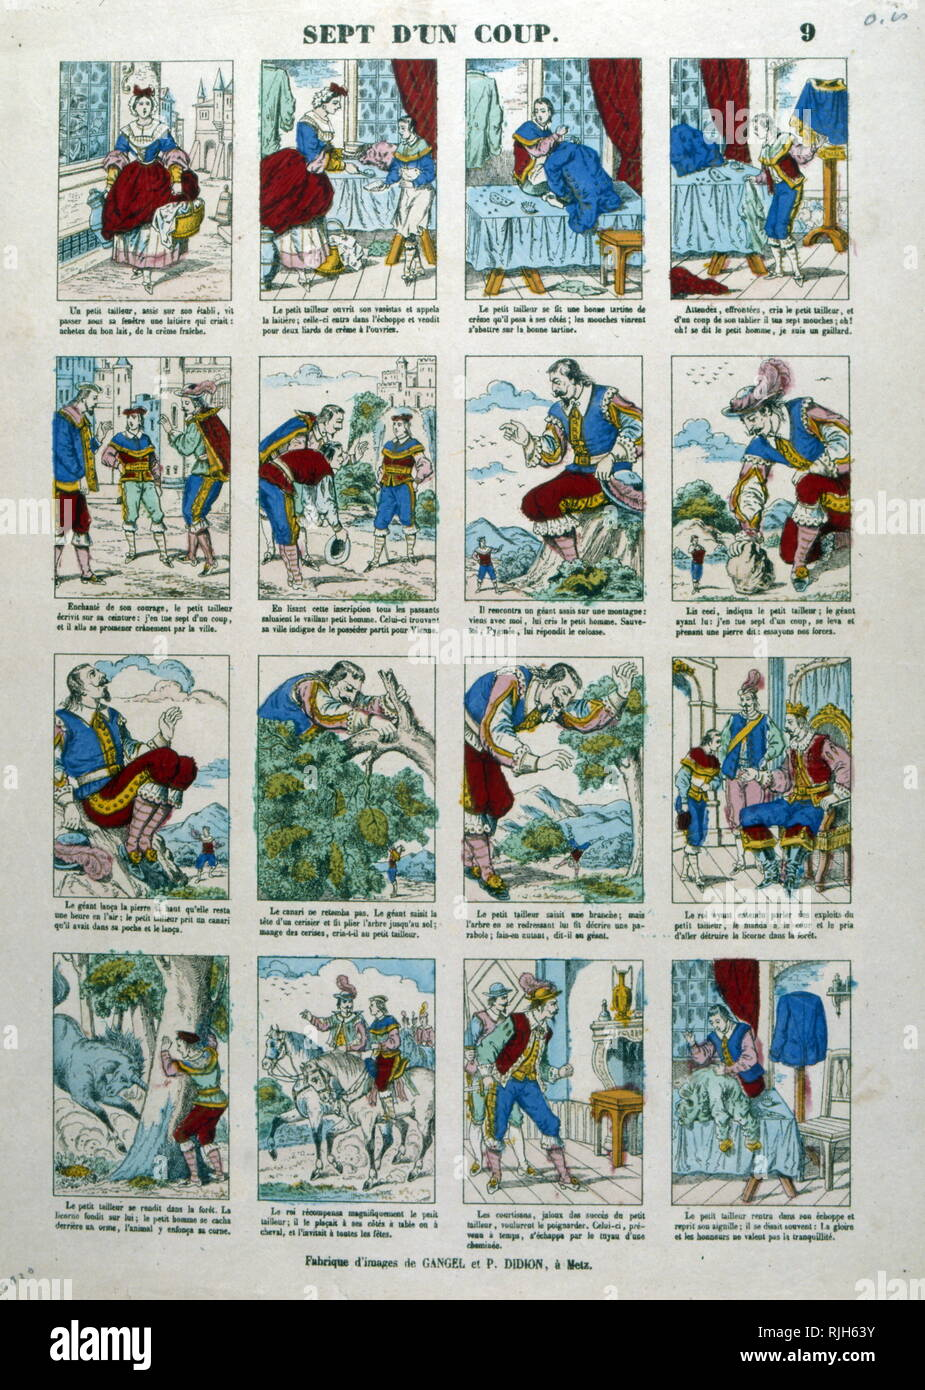 """The Vaillant Little Tailor; German folk tale that is among those collected by the Brothers Grimm in the first volume of Tales of childhood.; a series of 'Epinal images created by Imagerie Pellerin; France 1860. Jean-Charles Pellerin (1756-1836); French draftsman, illustrator and printer. He is famous for the images of epinal which he composed since the Revolution and which he printed himself from 1800. Succeeding his father, he took in 1773 the direction of the """"Factory of Pellerin"""" 3. From 1796, he expanded his activity and created the """"Imagerie Pellerin"""". As early as 1800, he started a small Stock Photo"""